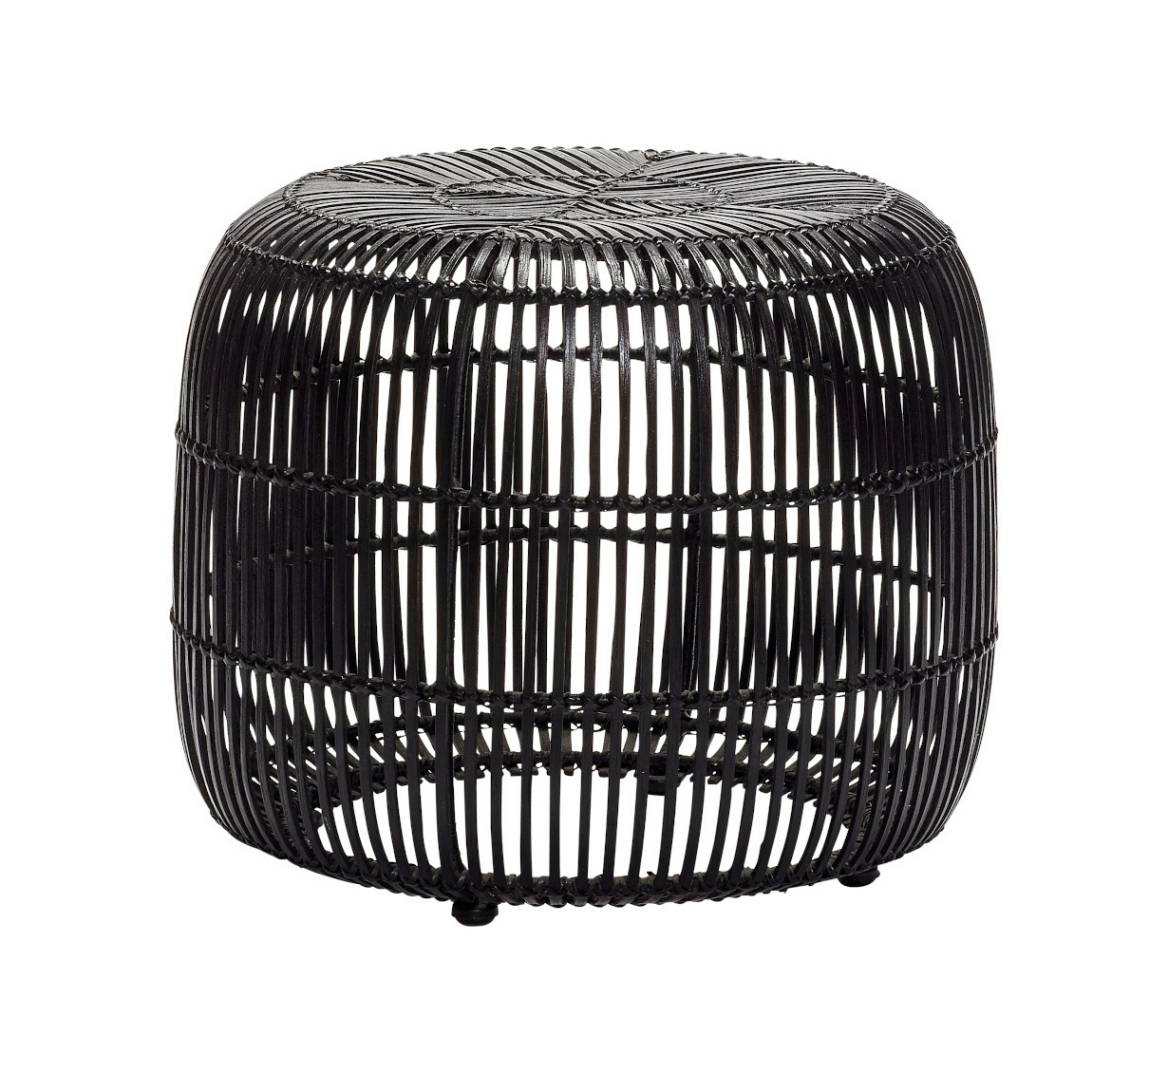 Hübsch Interior Rattan Hocker Design Möbel